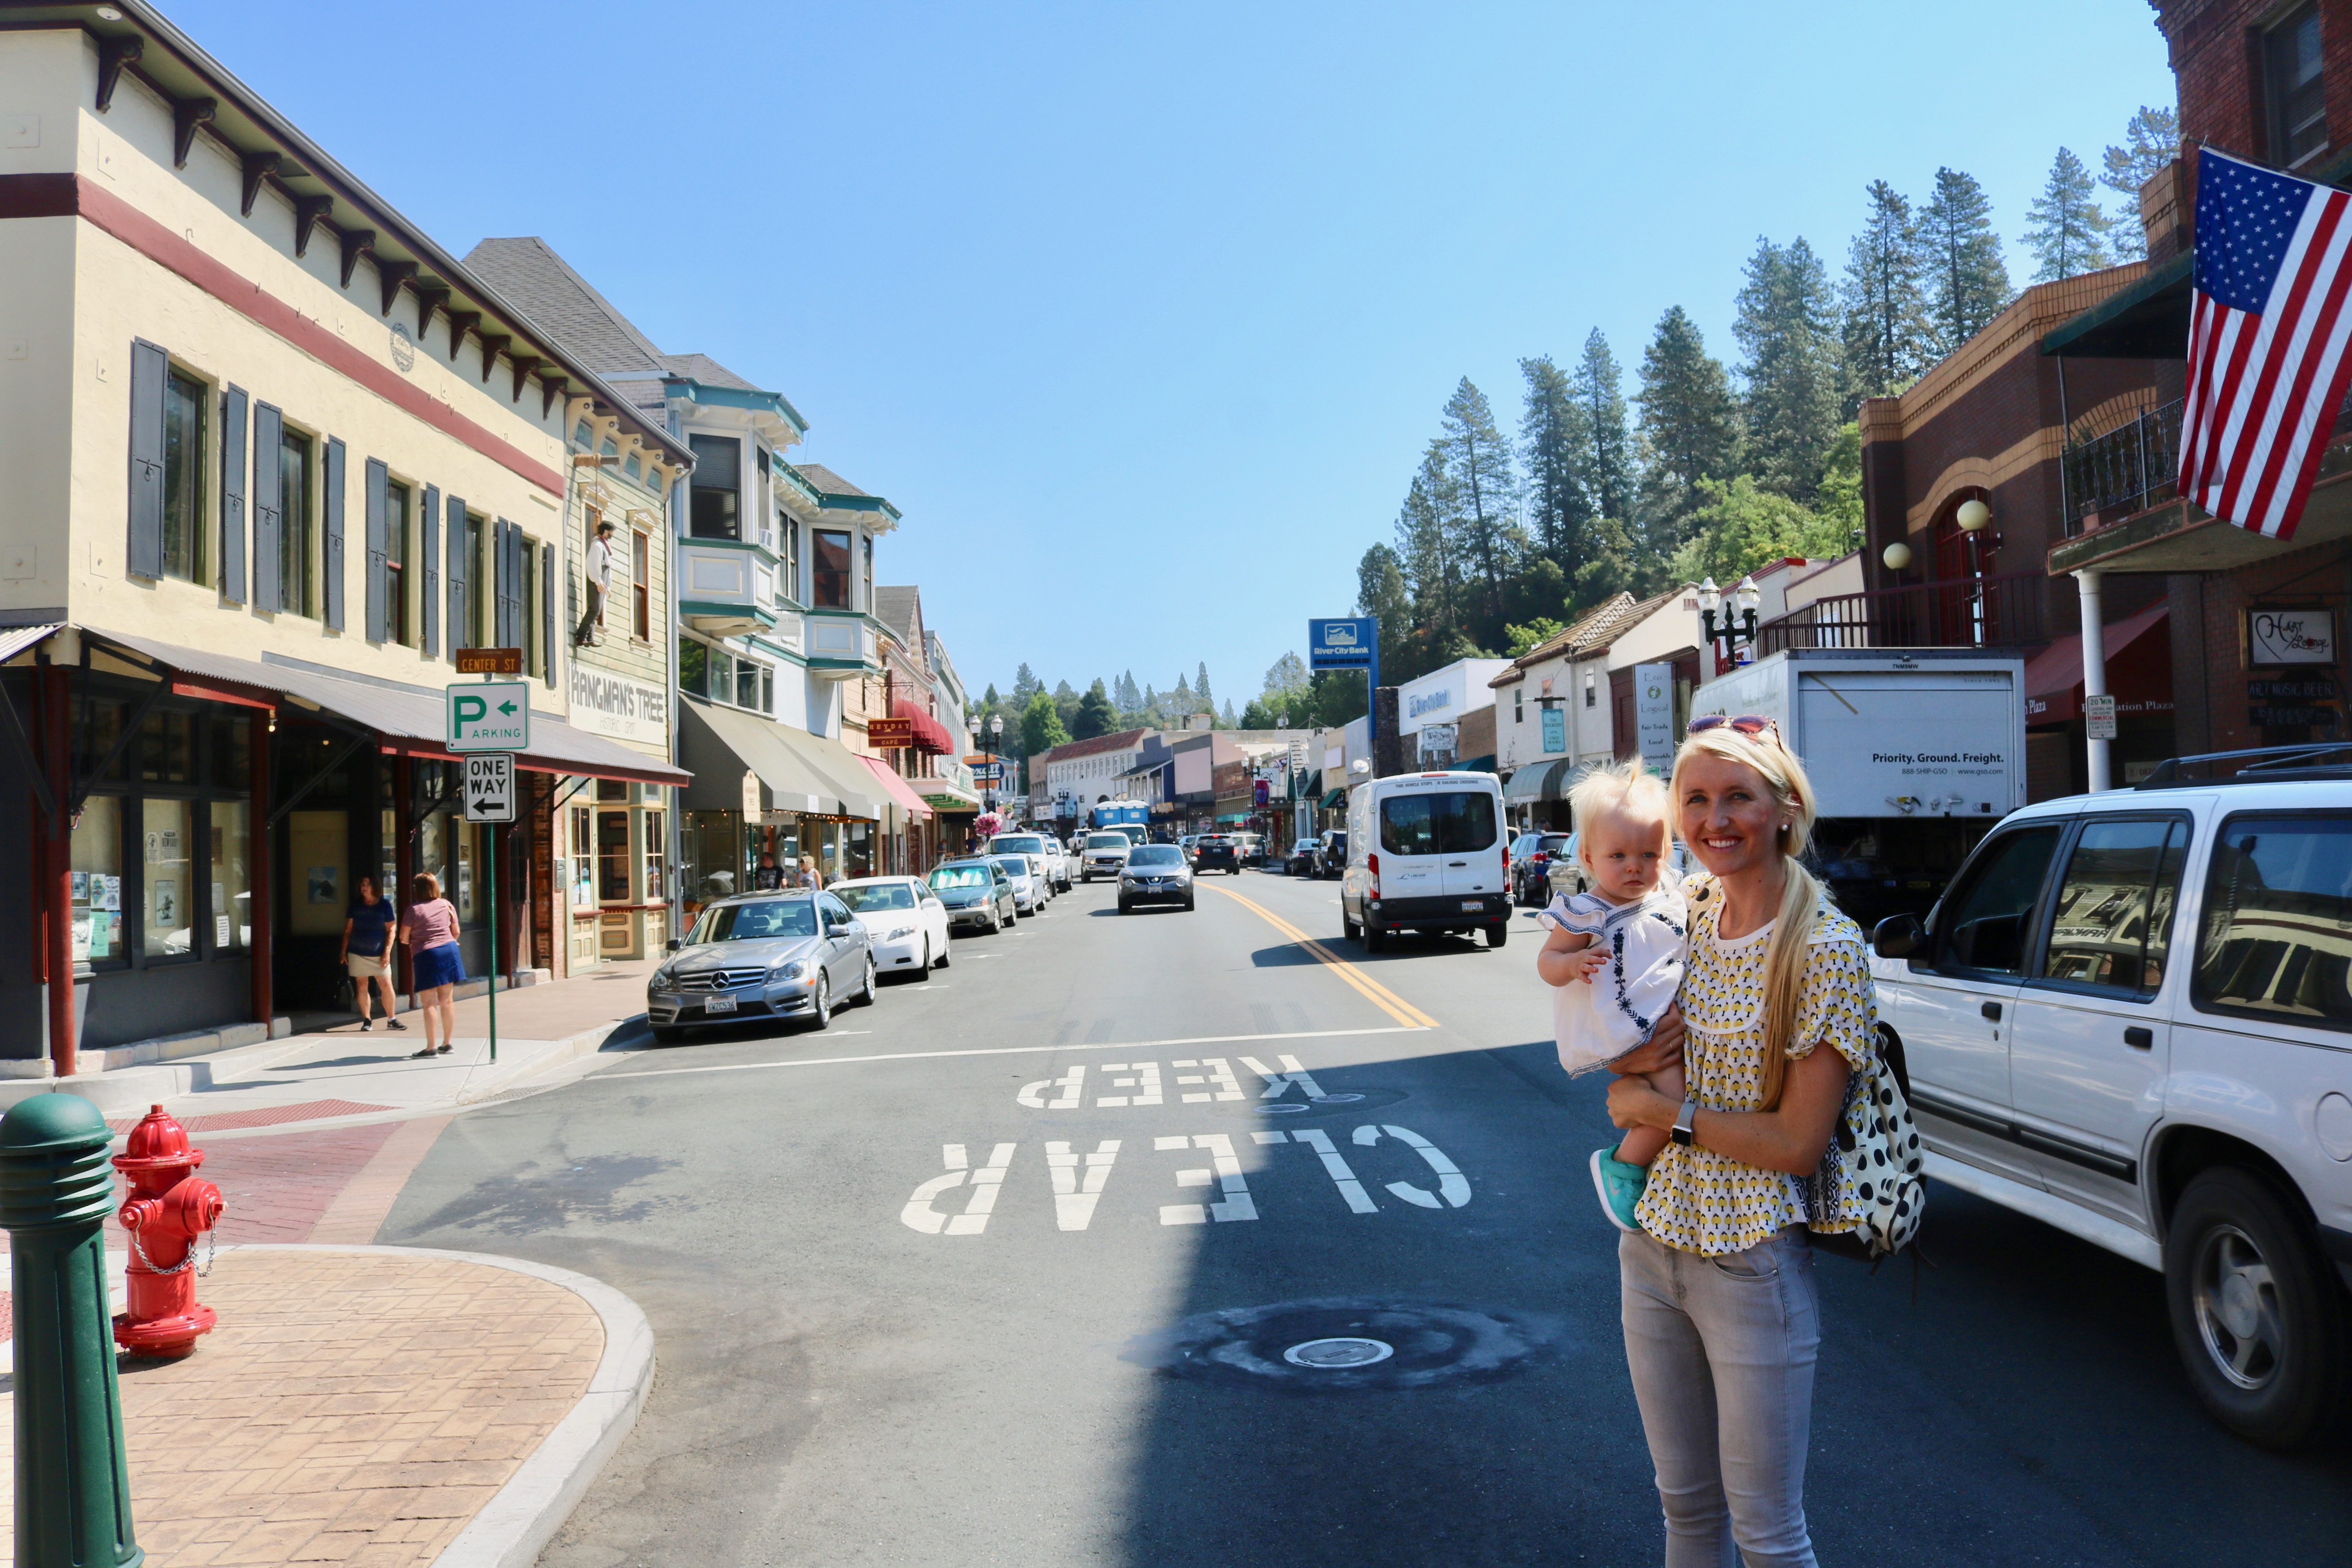 Road tripping through Placerville